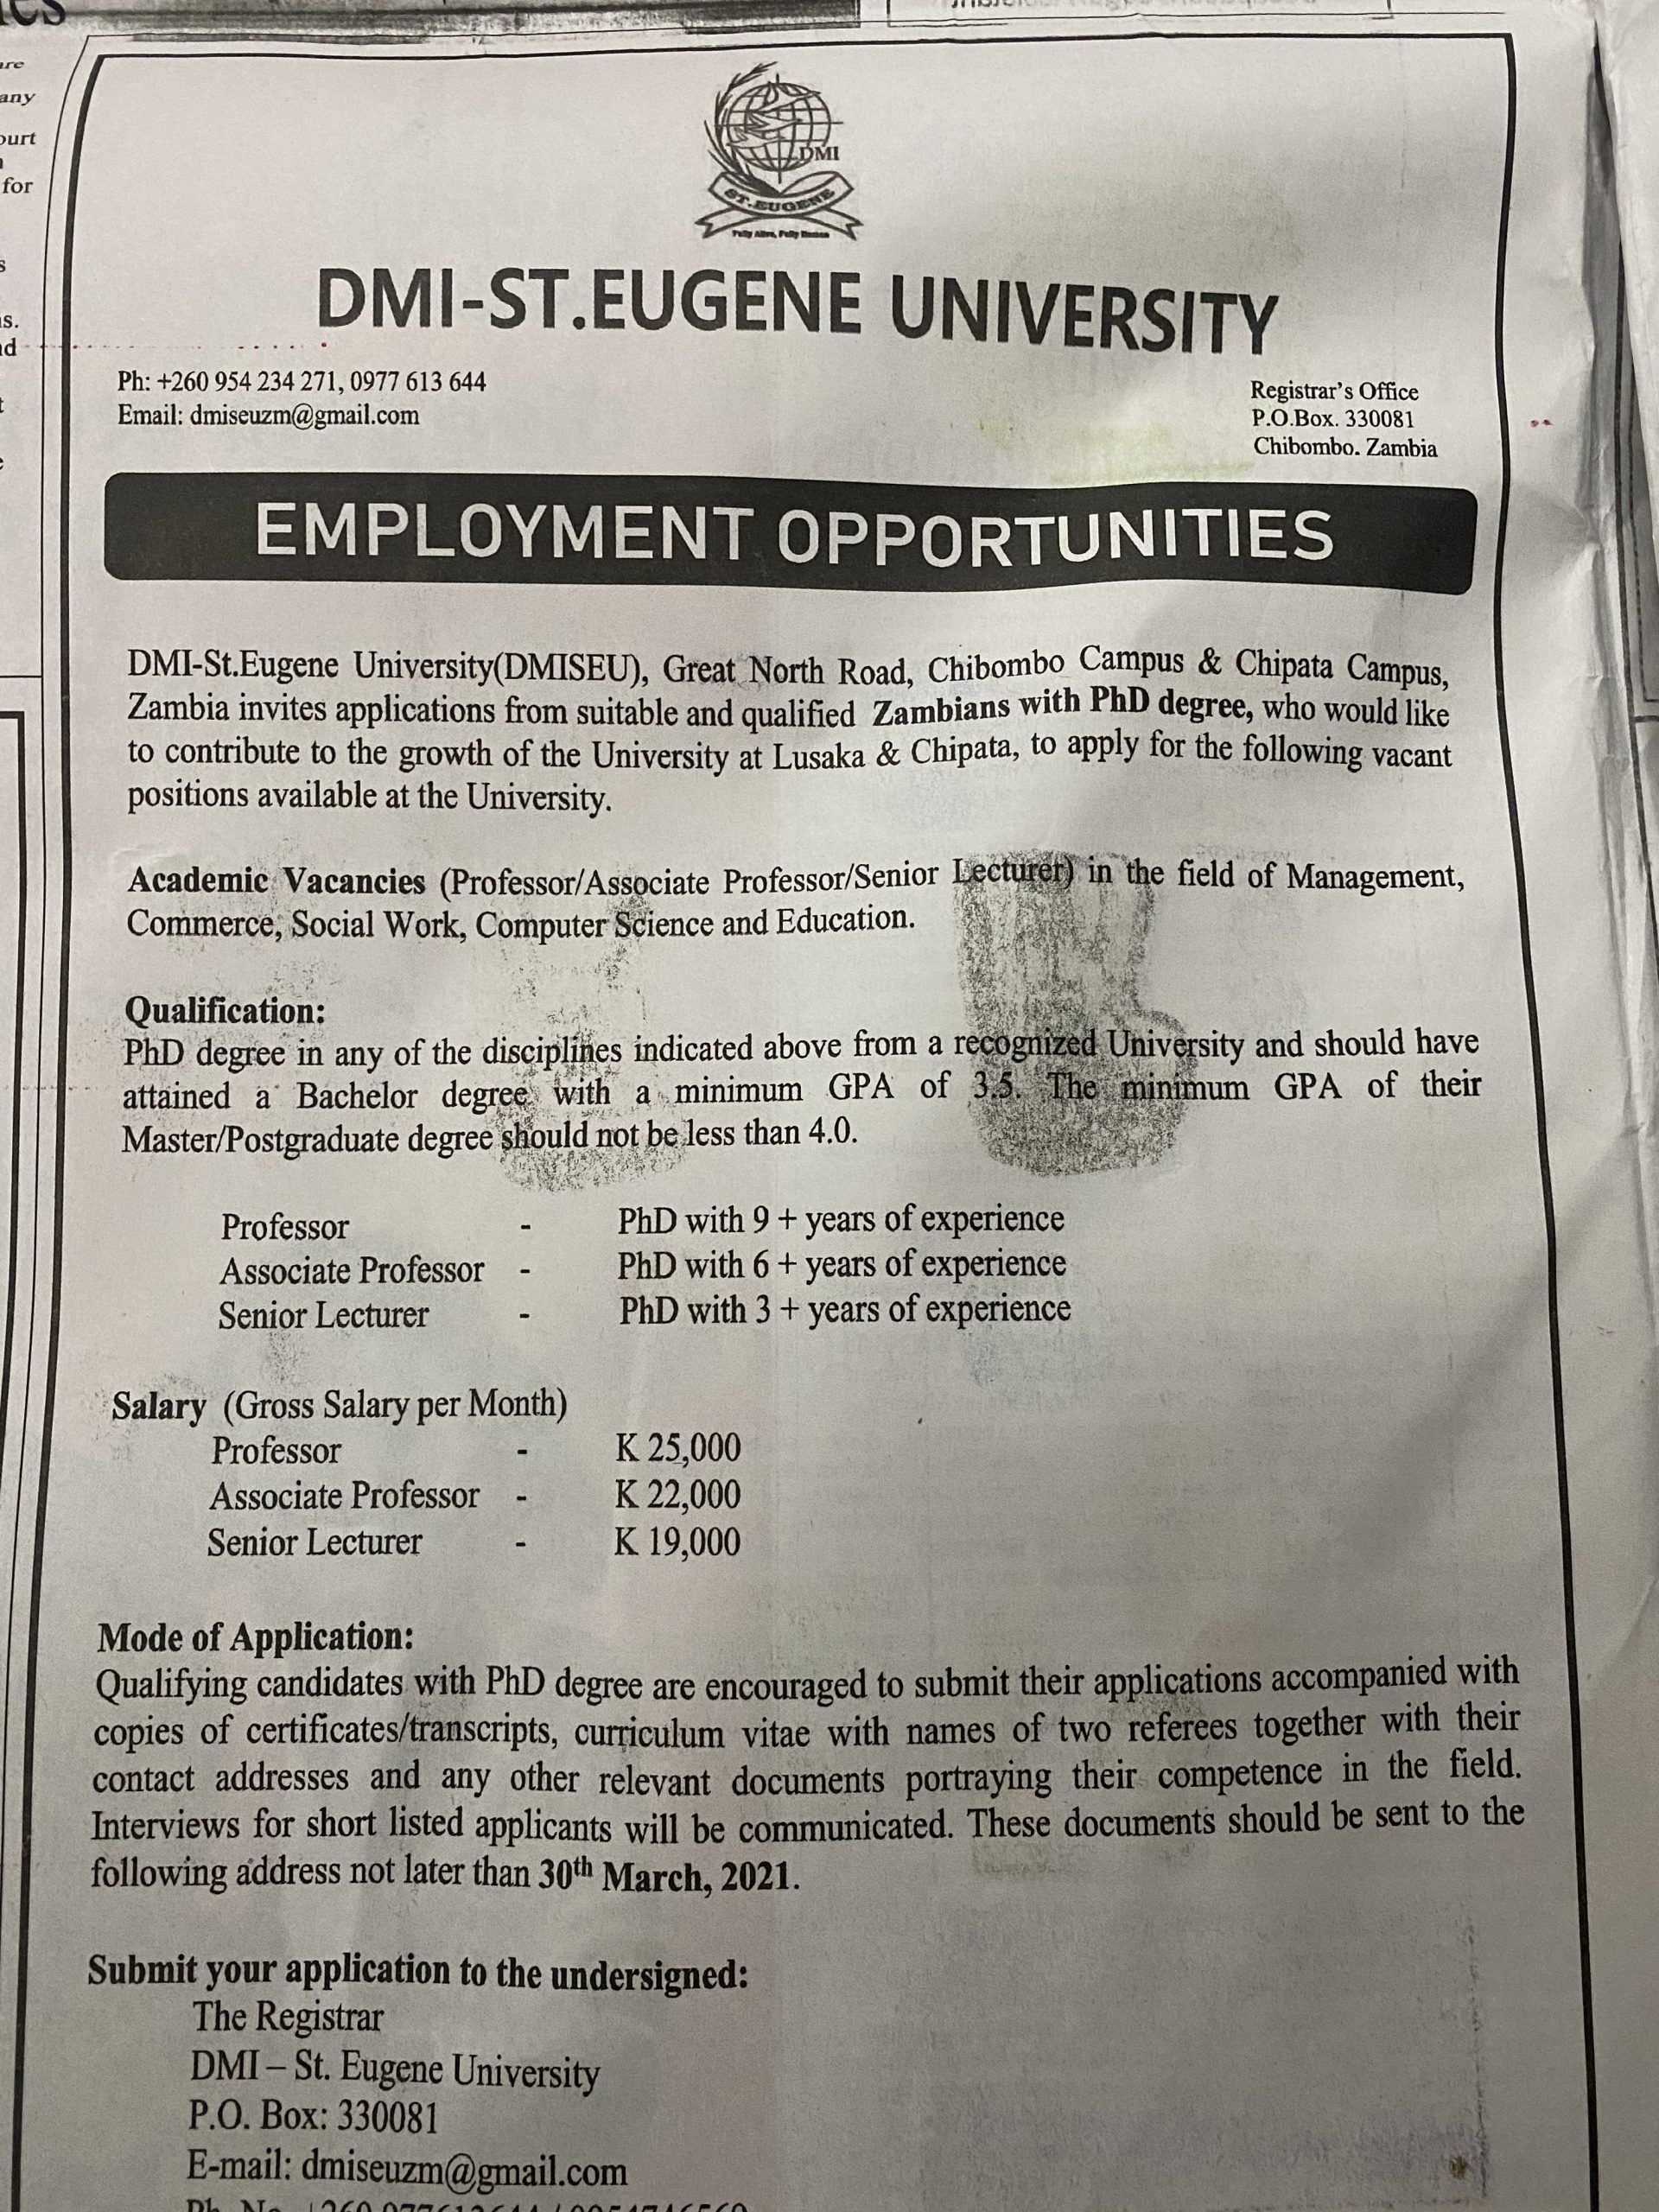 Salaries for professors in Zambian